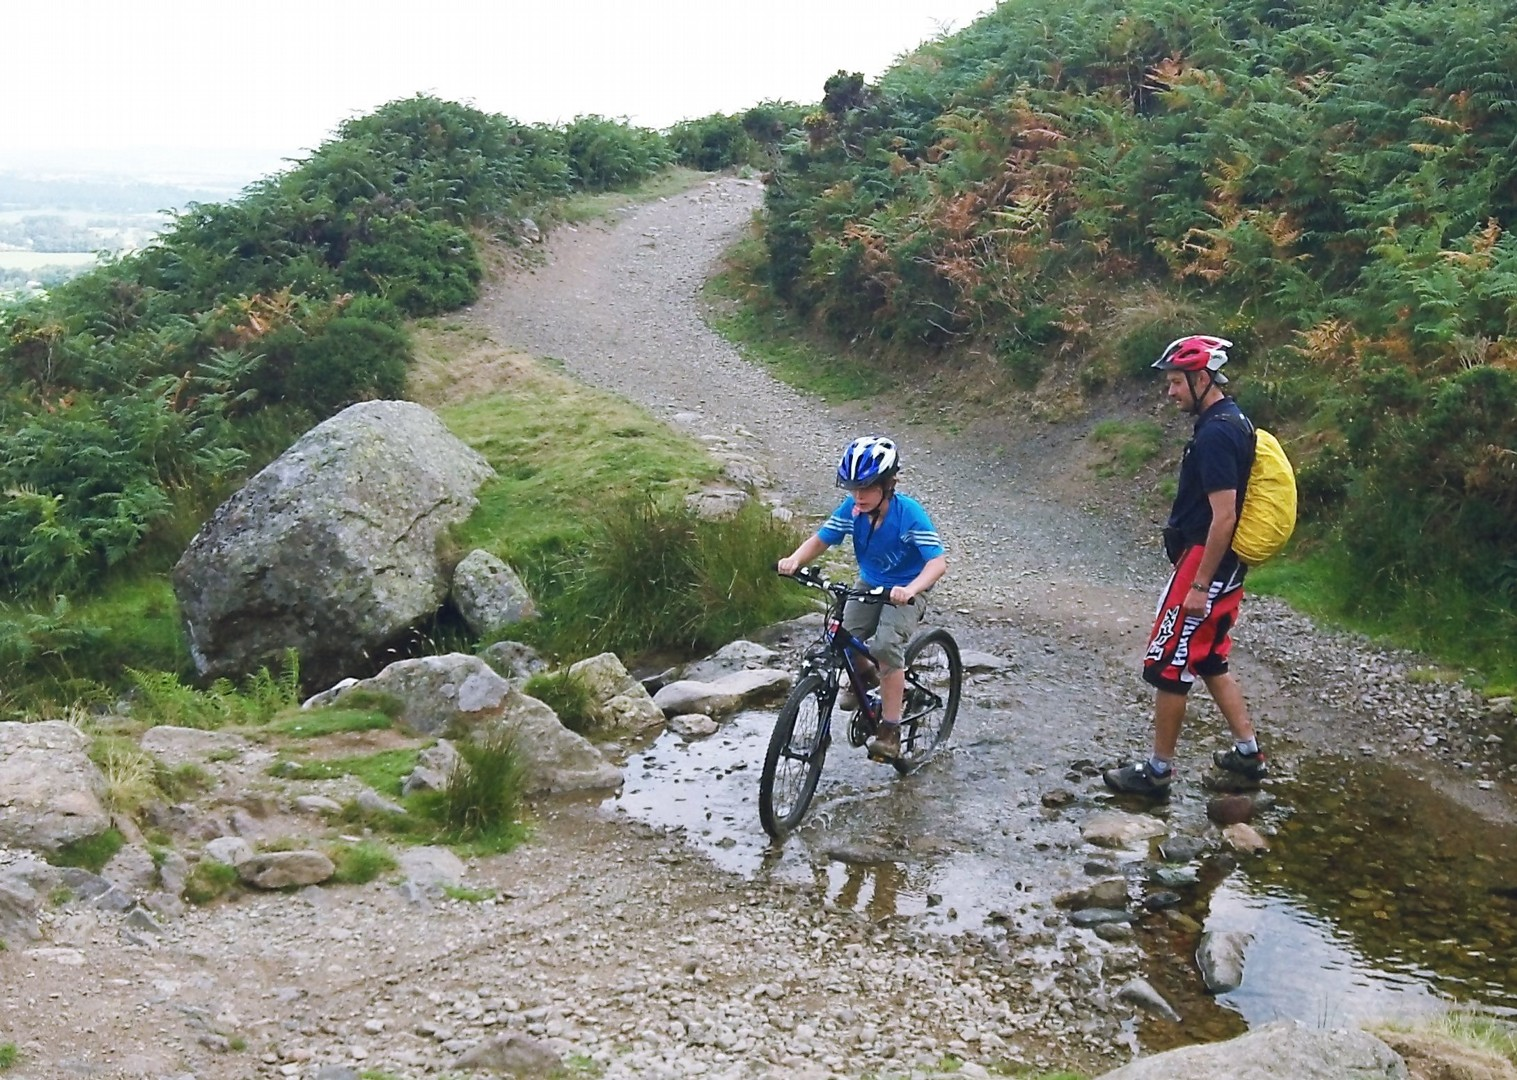 lake-district-uk-bike-skills.jpg - UK - Lake District - Bike Skills - Family Cycling